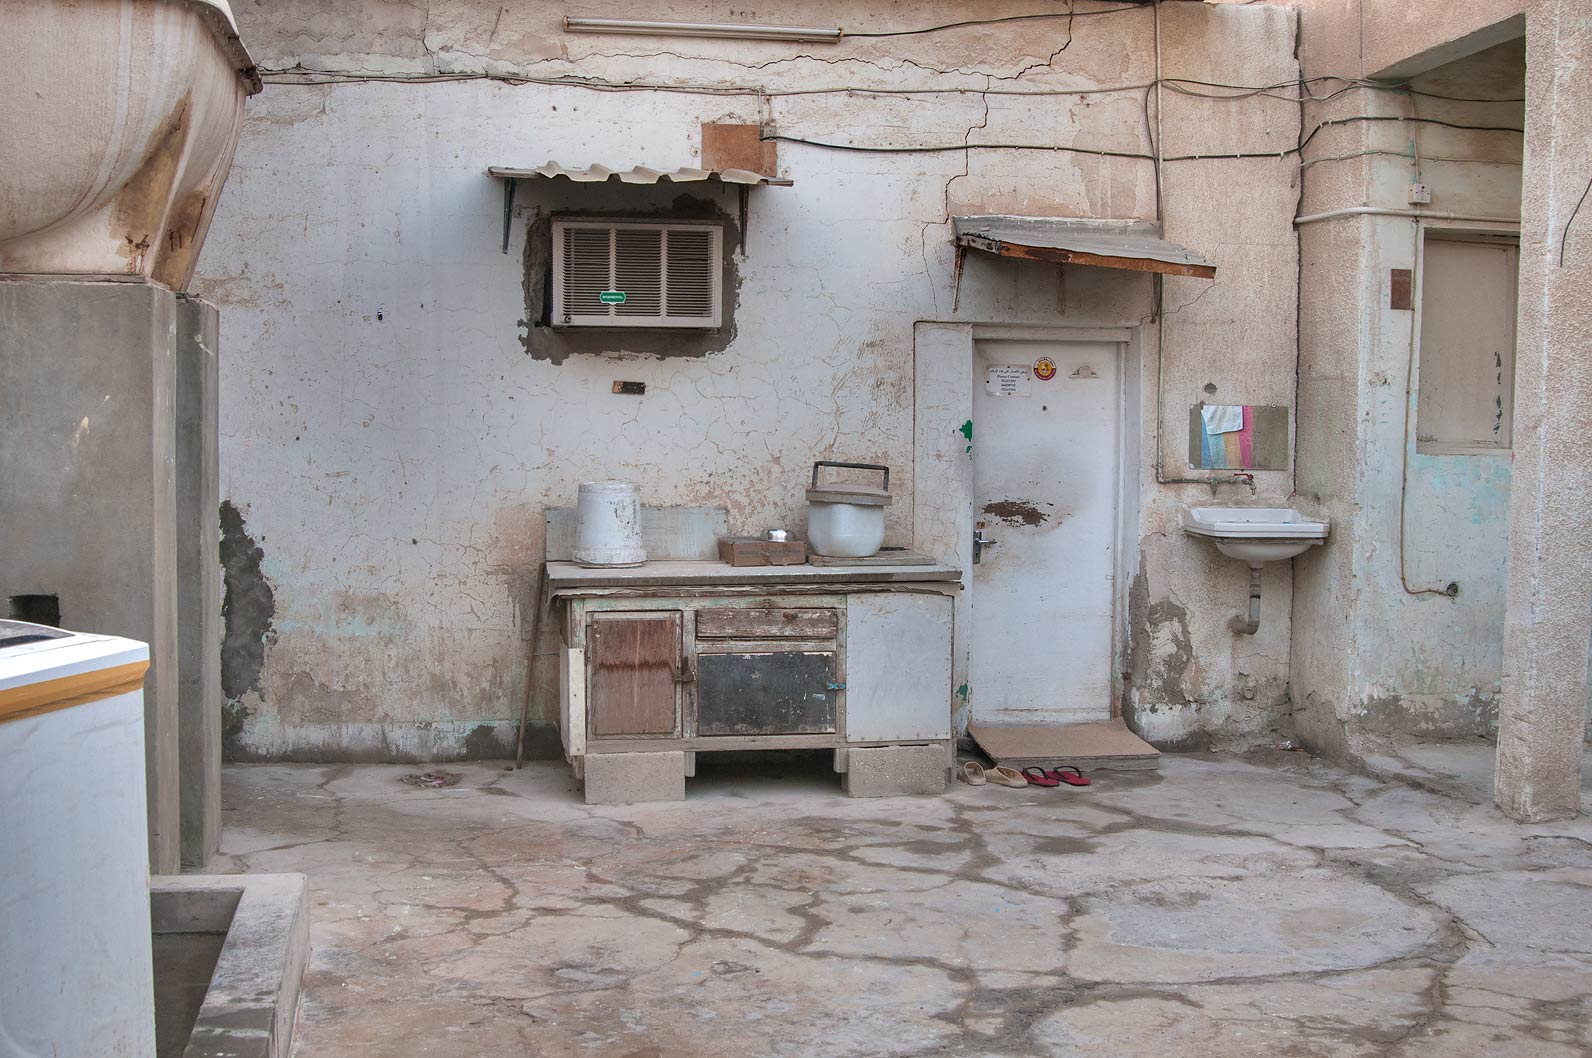 Primitive kitchen at Al Jassasiya St., Musheirib area. Doha, Qatar